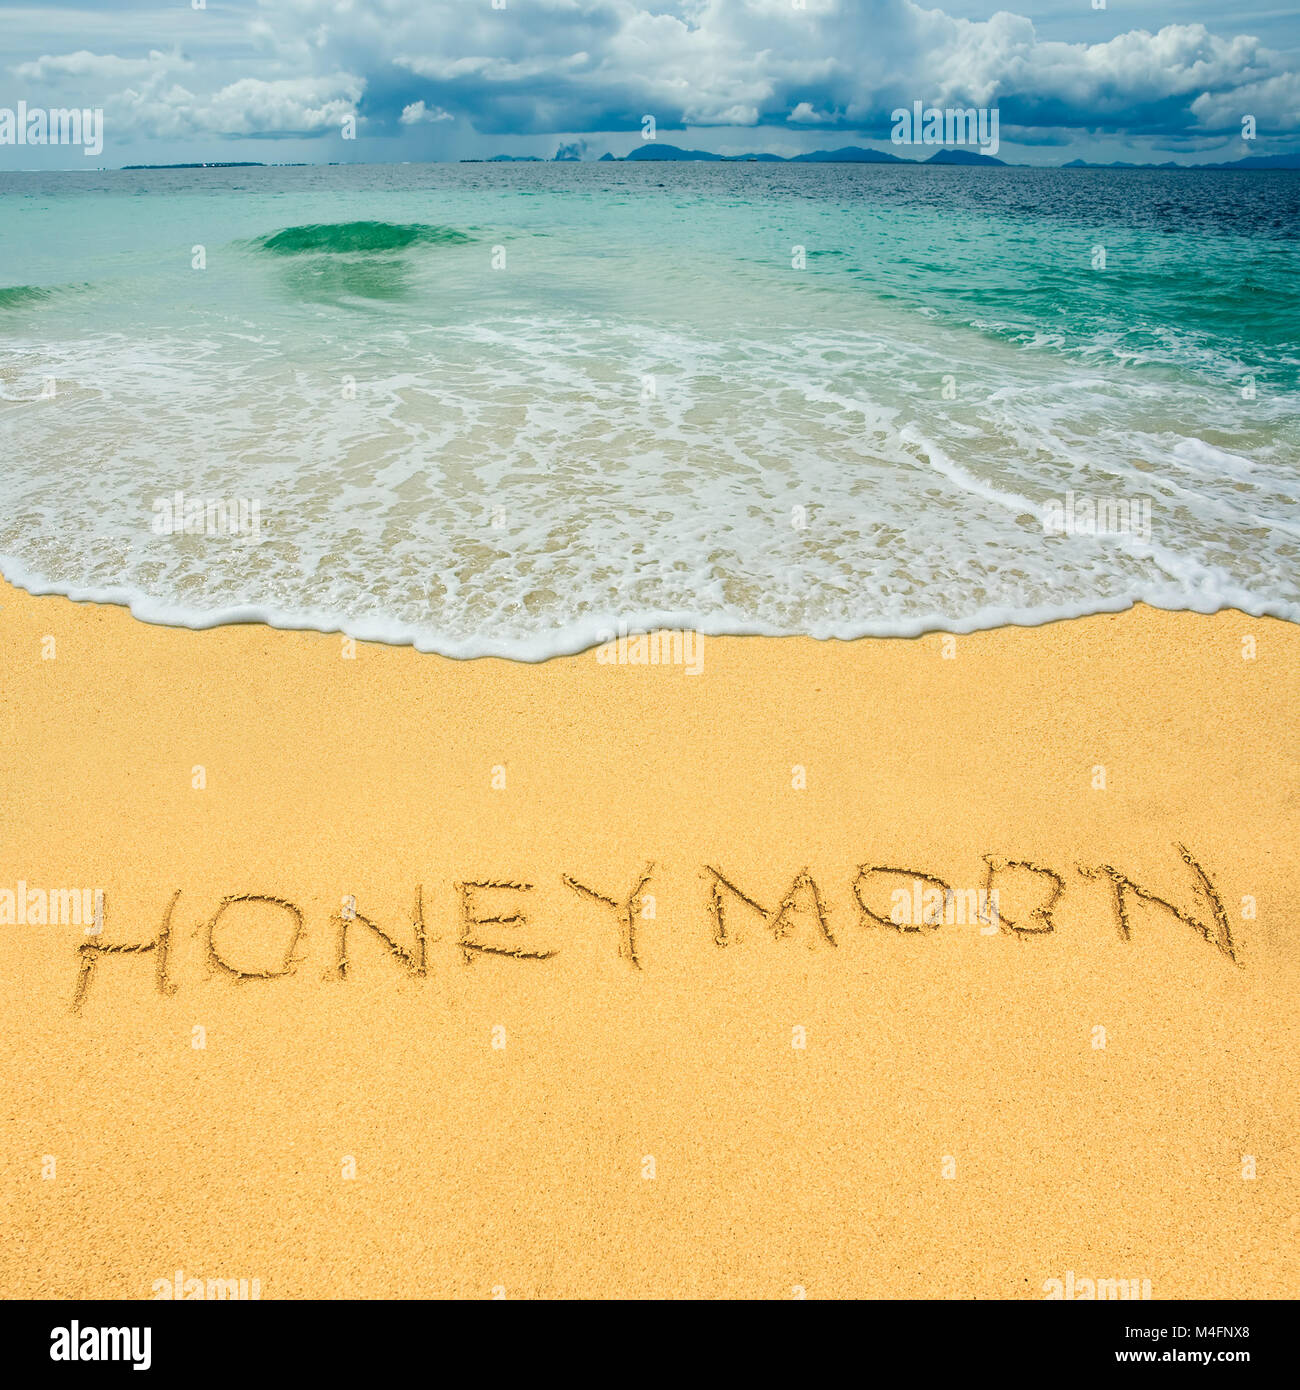 Honeymoon drawn in a sandy tropical beach - Stock Image